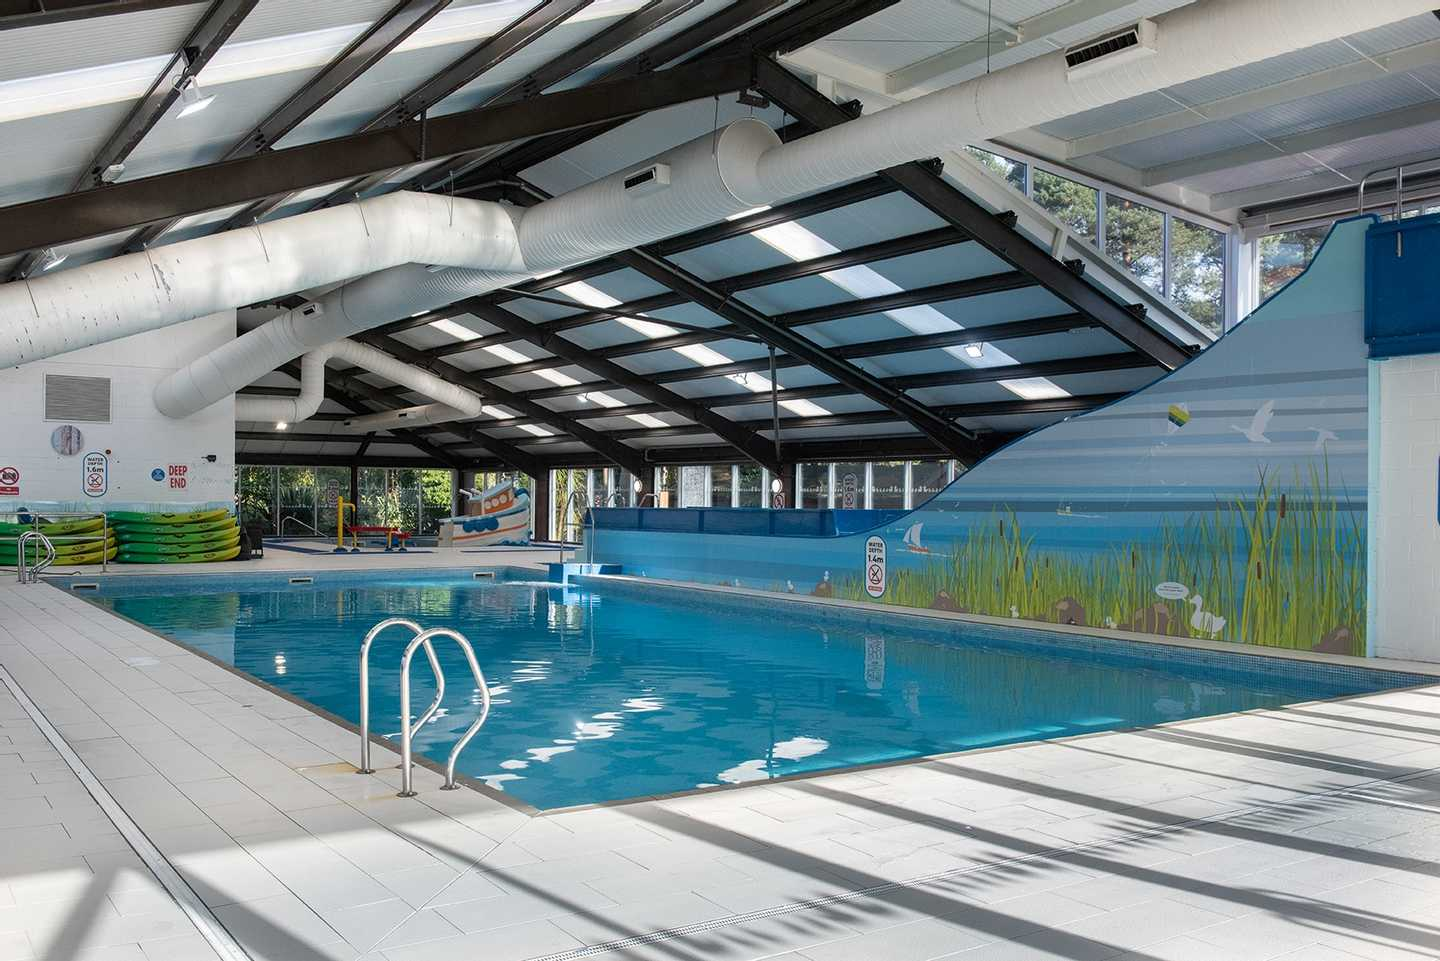 Guests swimming in the indoor pool